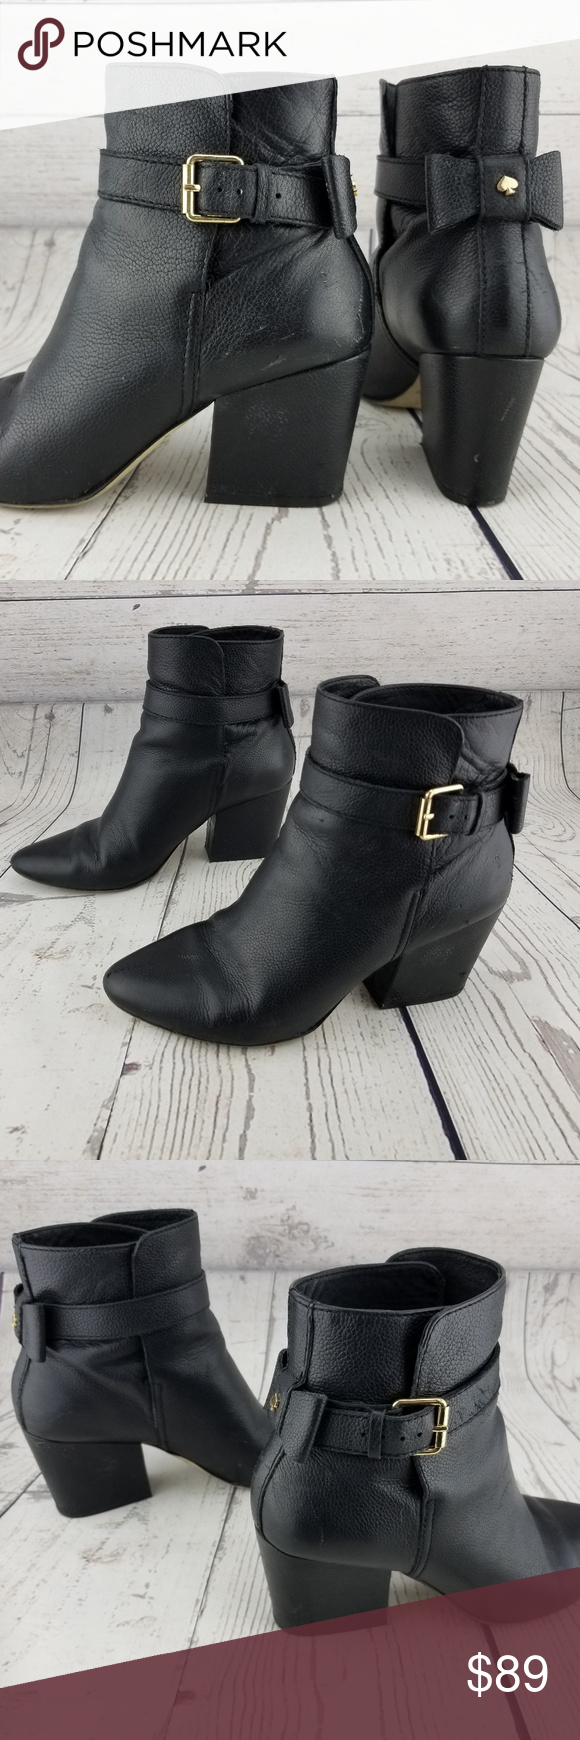 310caeb9a09b Kate Spade Brandi Boots Black Pebbled Leather Kate Spade New York  Brandi  Boots Black Pebbled Leather Booties Bow Detail on Heel Buckle Women s size   8.5 M ...